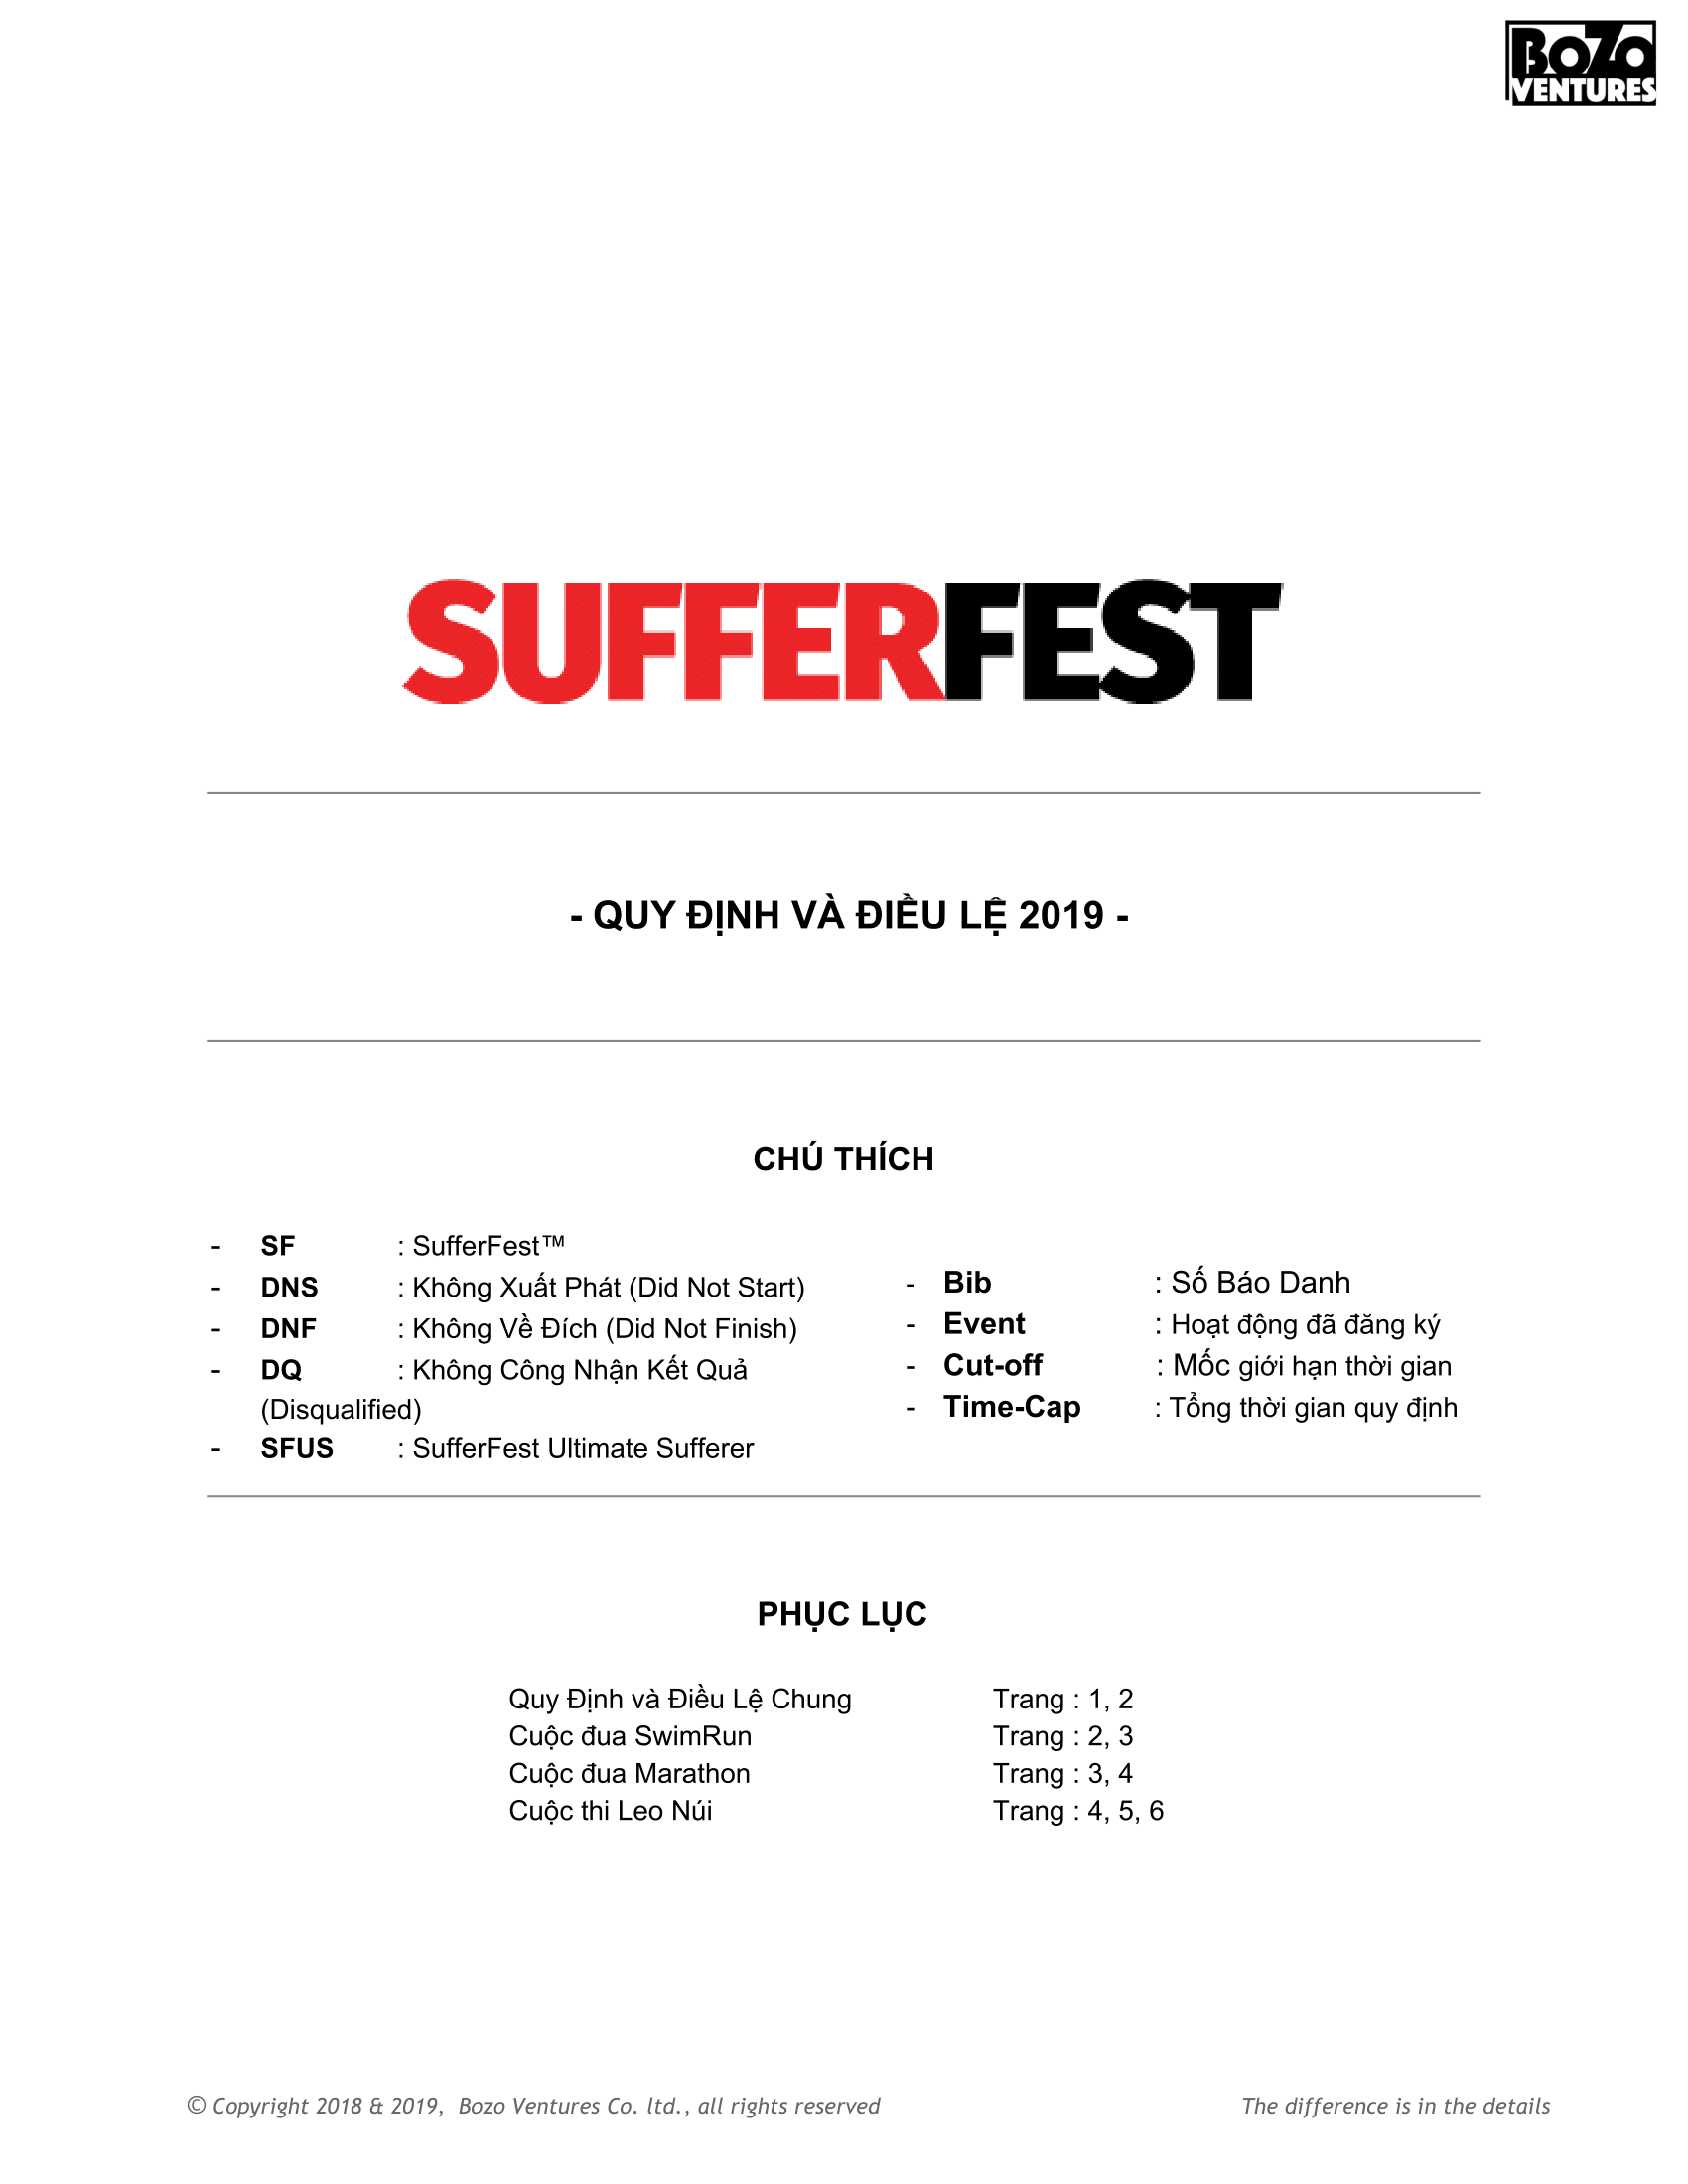 [VN] SufferFest™ - Official Rules and Regulations - 20181022-1.png